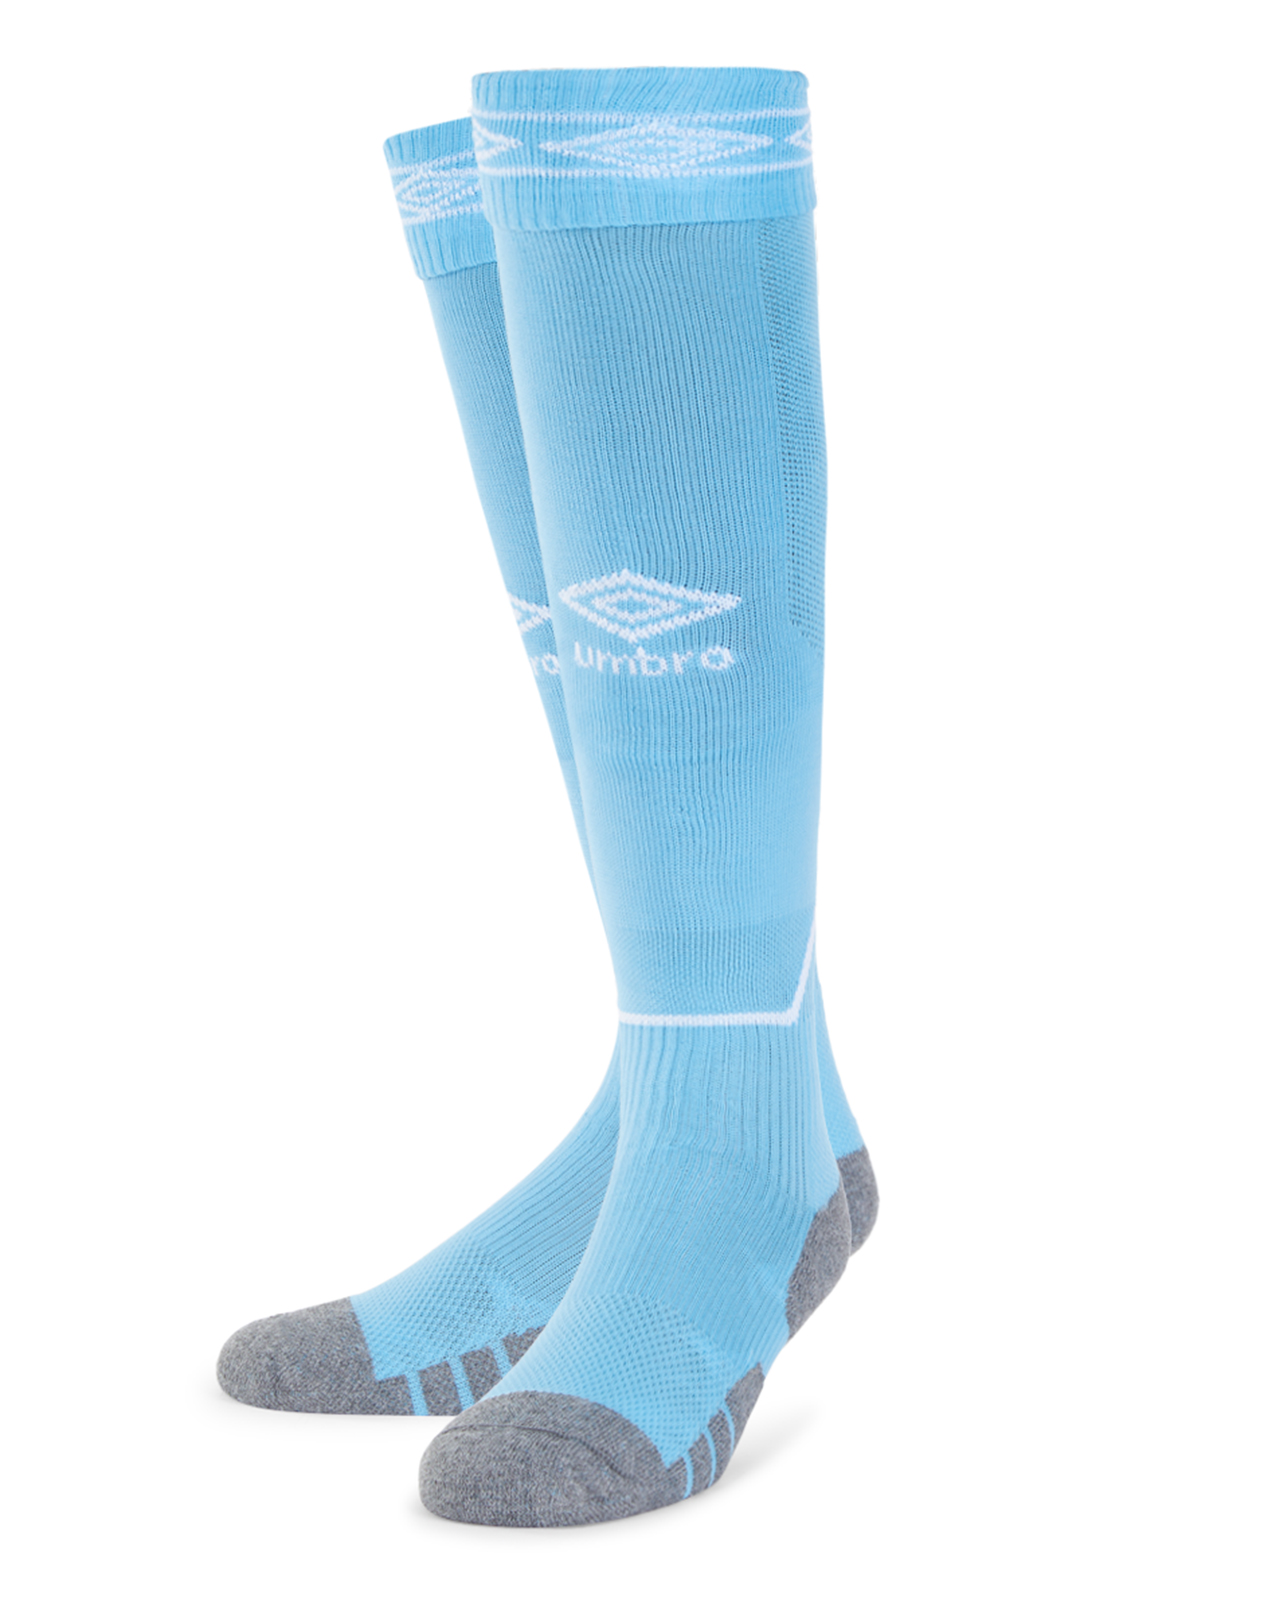 Umbro Diamond Top Socks in sky blue with white Diamond turnover design